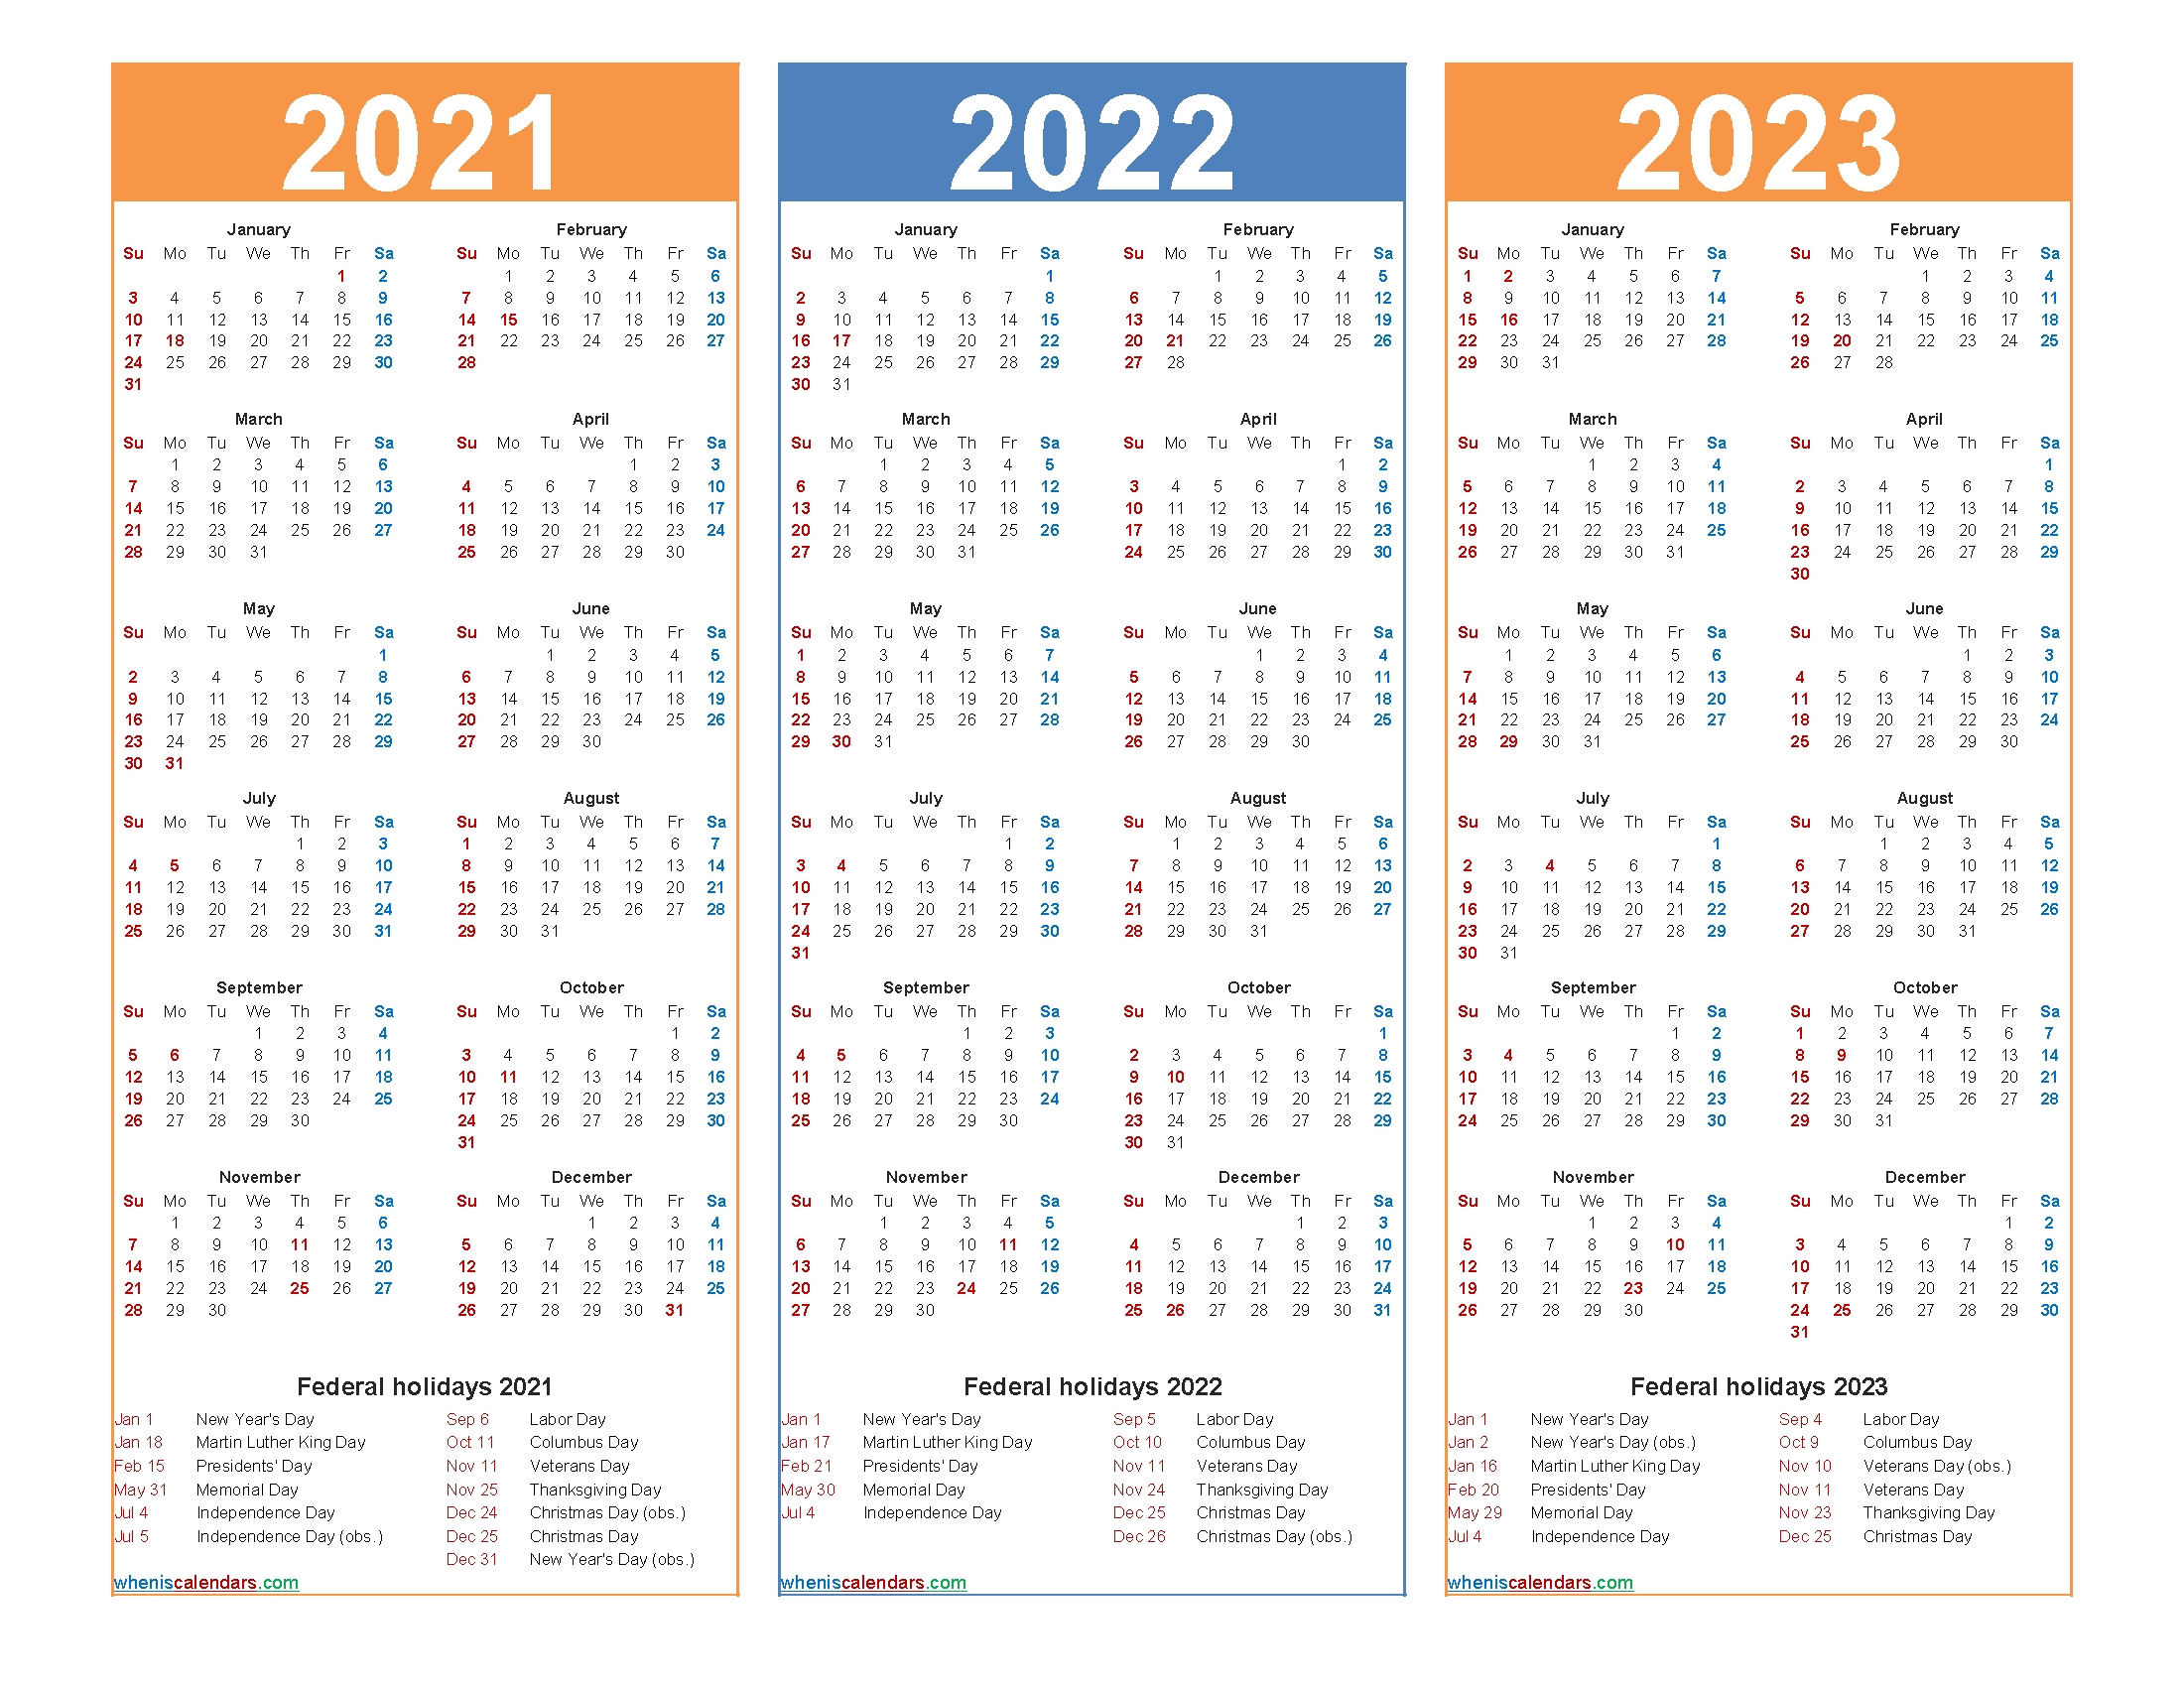 Free Printable 2021 To 2023 Calendar With Holidays – Free Printable 2020 Monthly Calendar With-3 Year Calendar 2021 To 2023